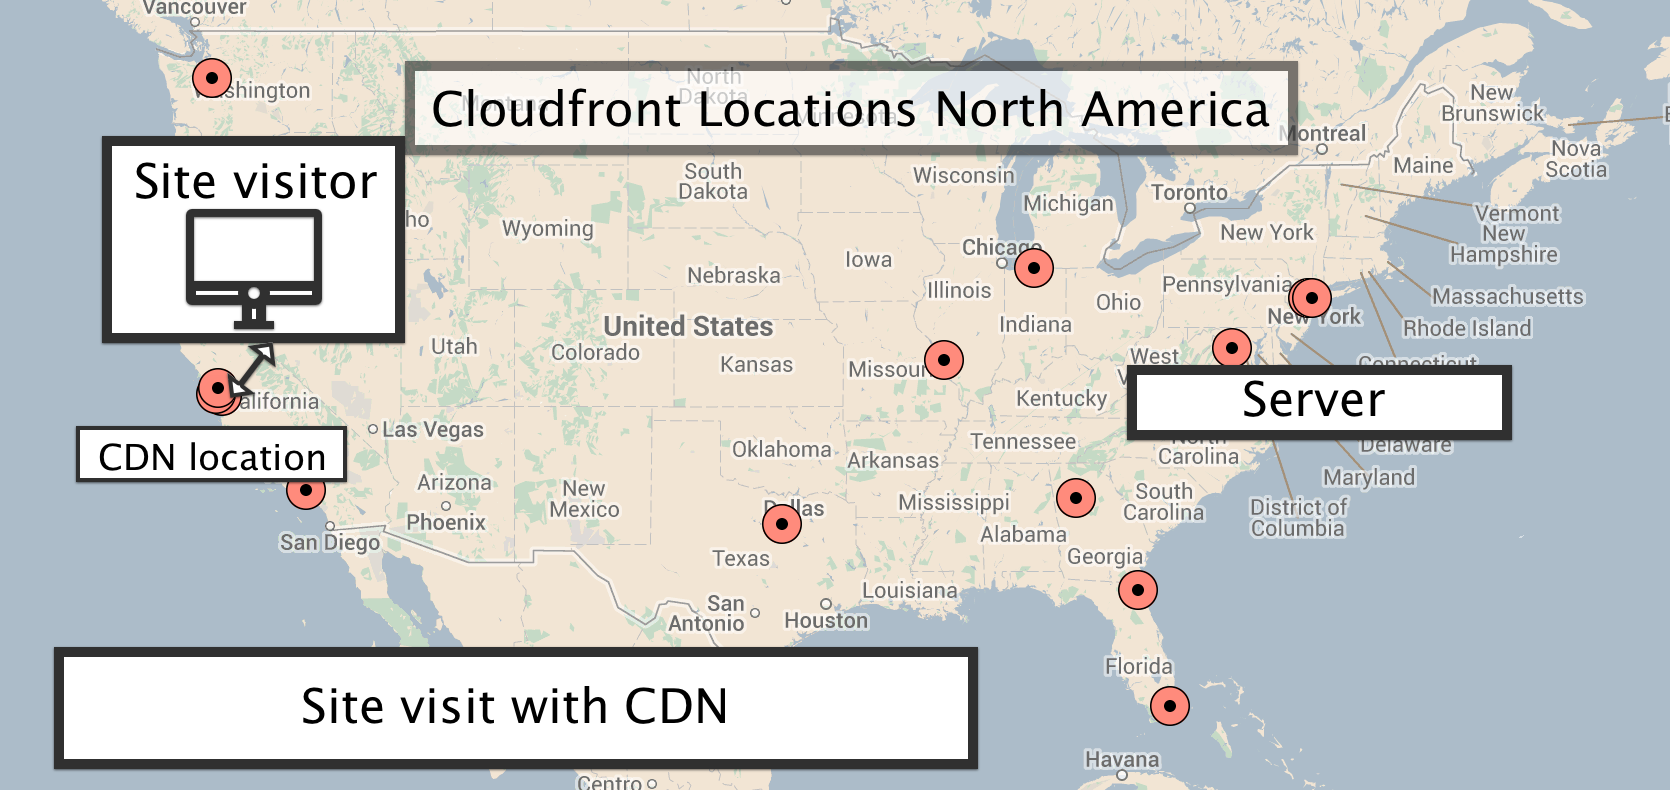 Site visit with CDN goes to closest CloudFront location